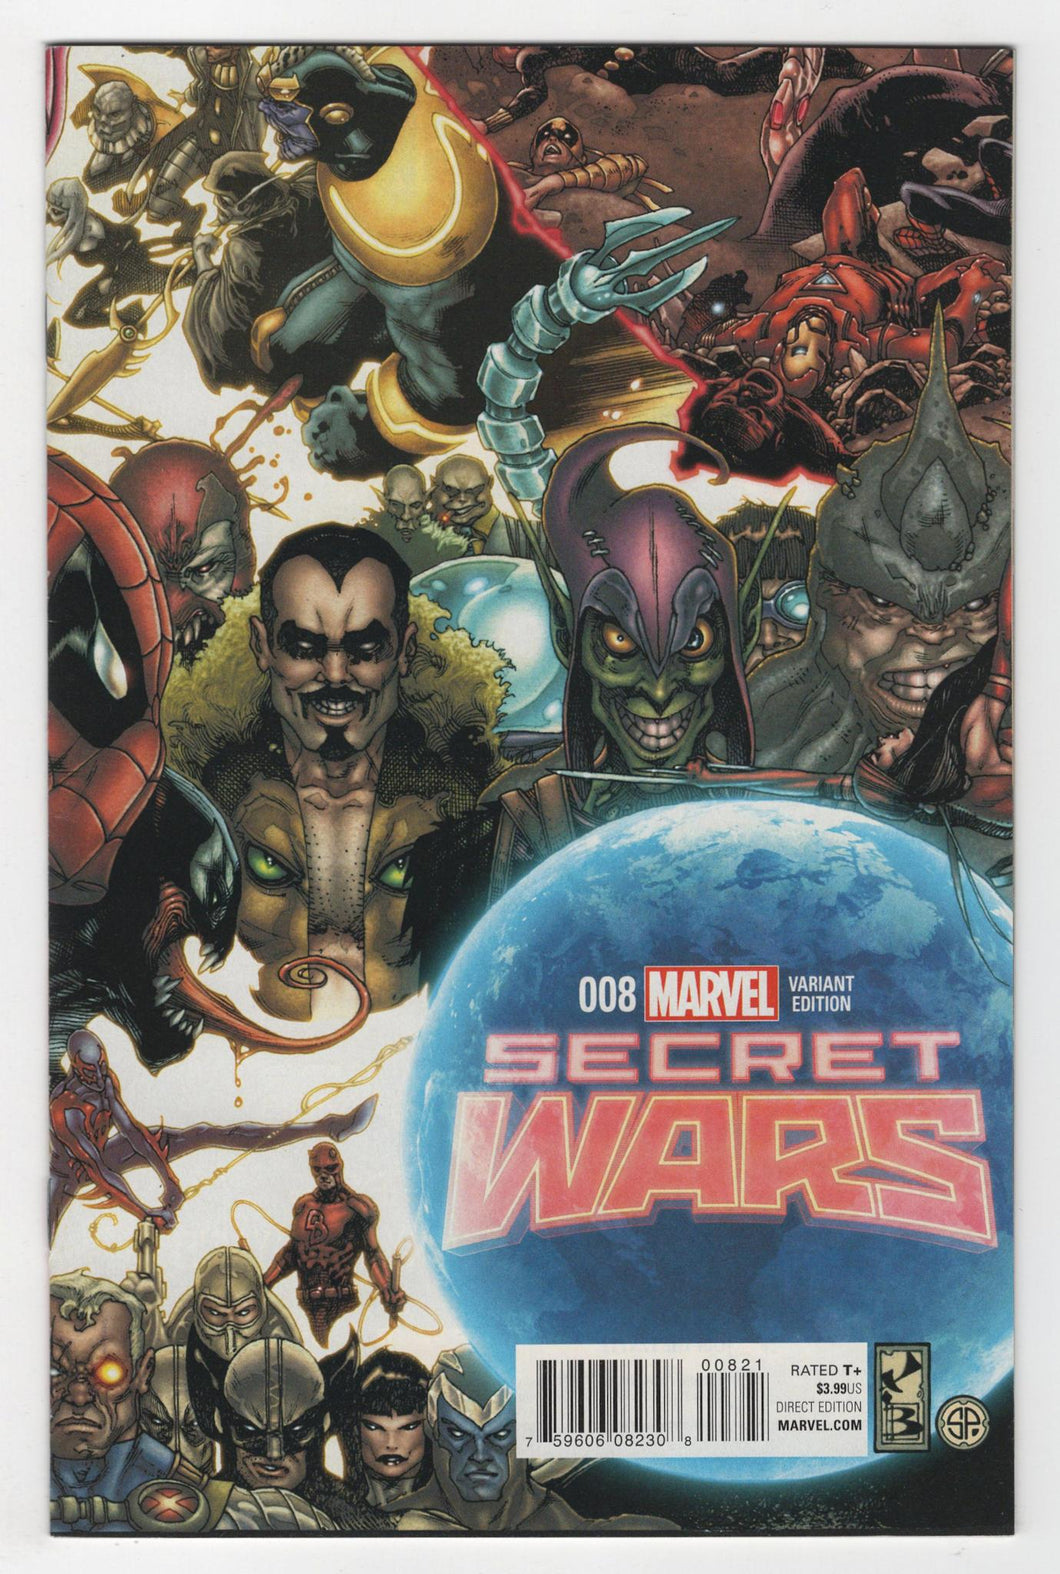 Secret Wars #8 Incentive Variant Cover Front